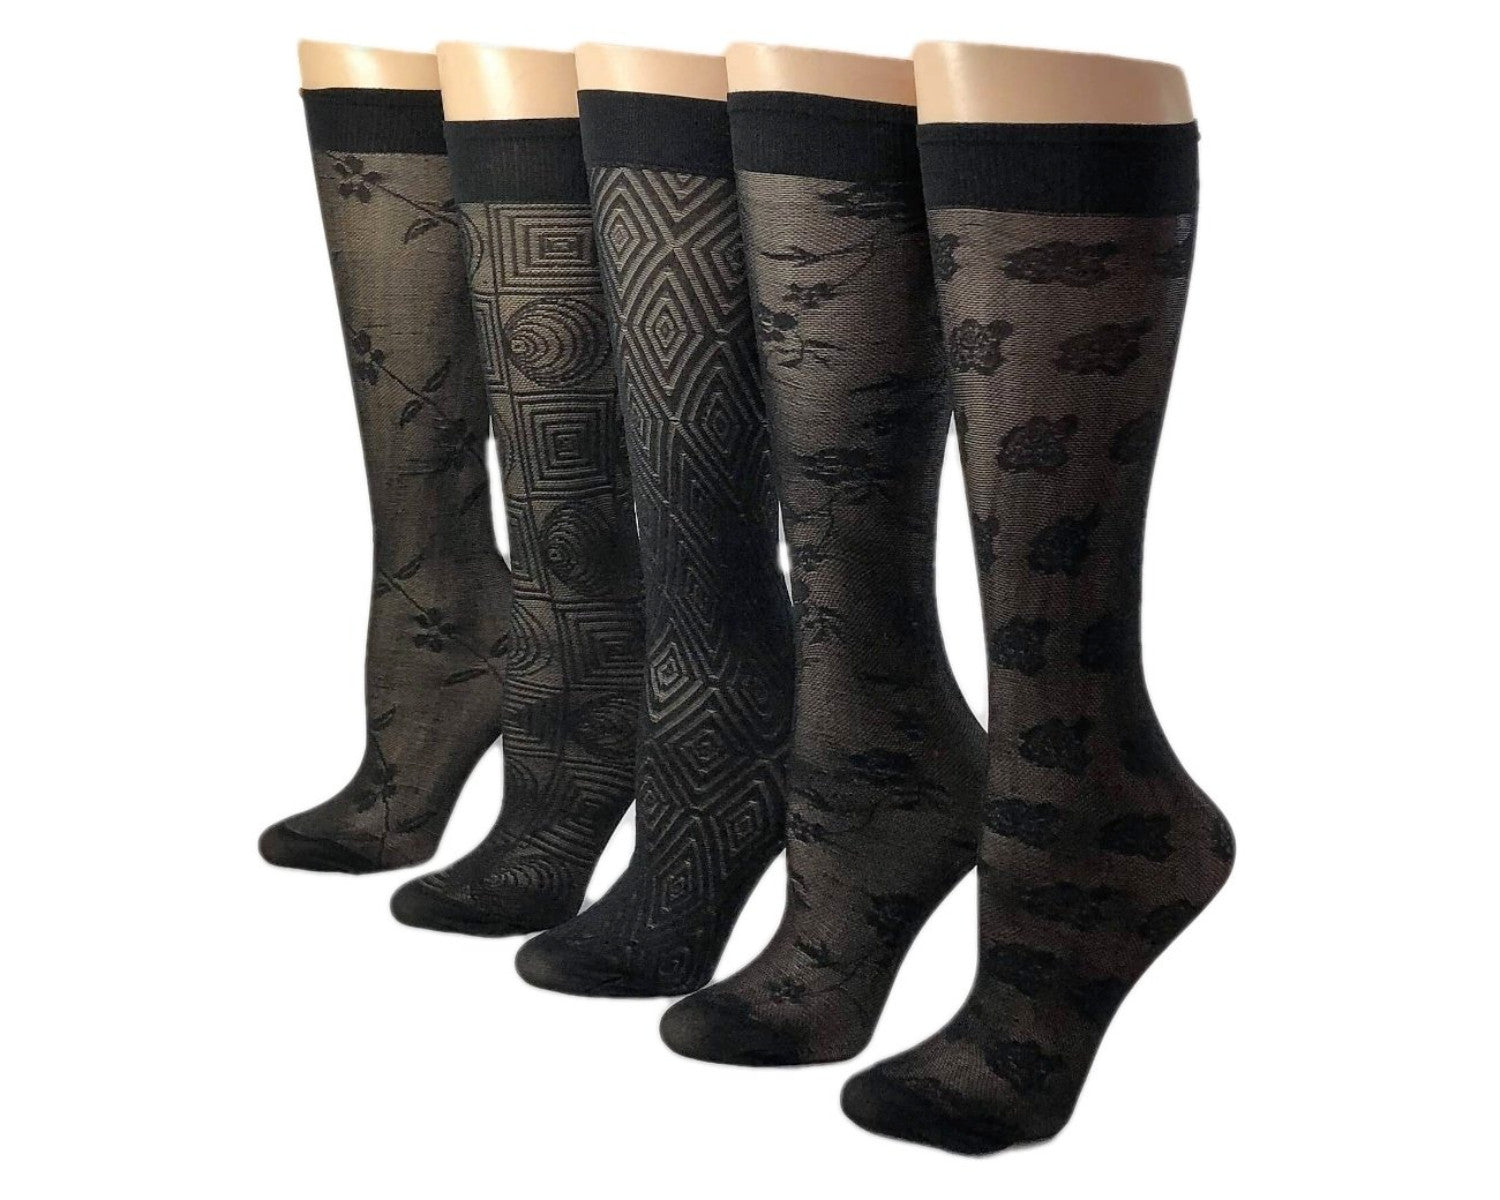 Black Diverse Patterned Sheer Socks (Pack of 5 Pairs) - Global Trendz Fashion®